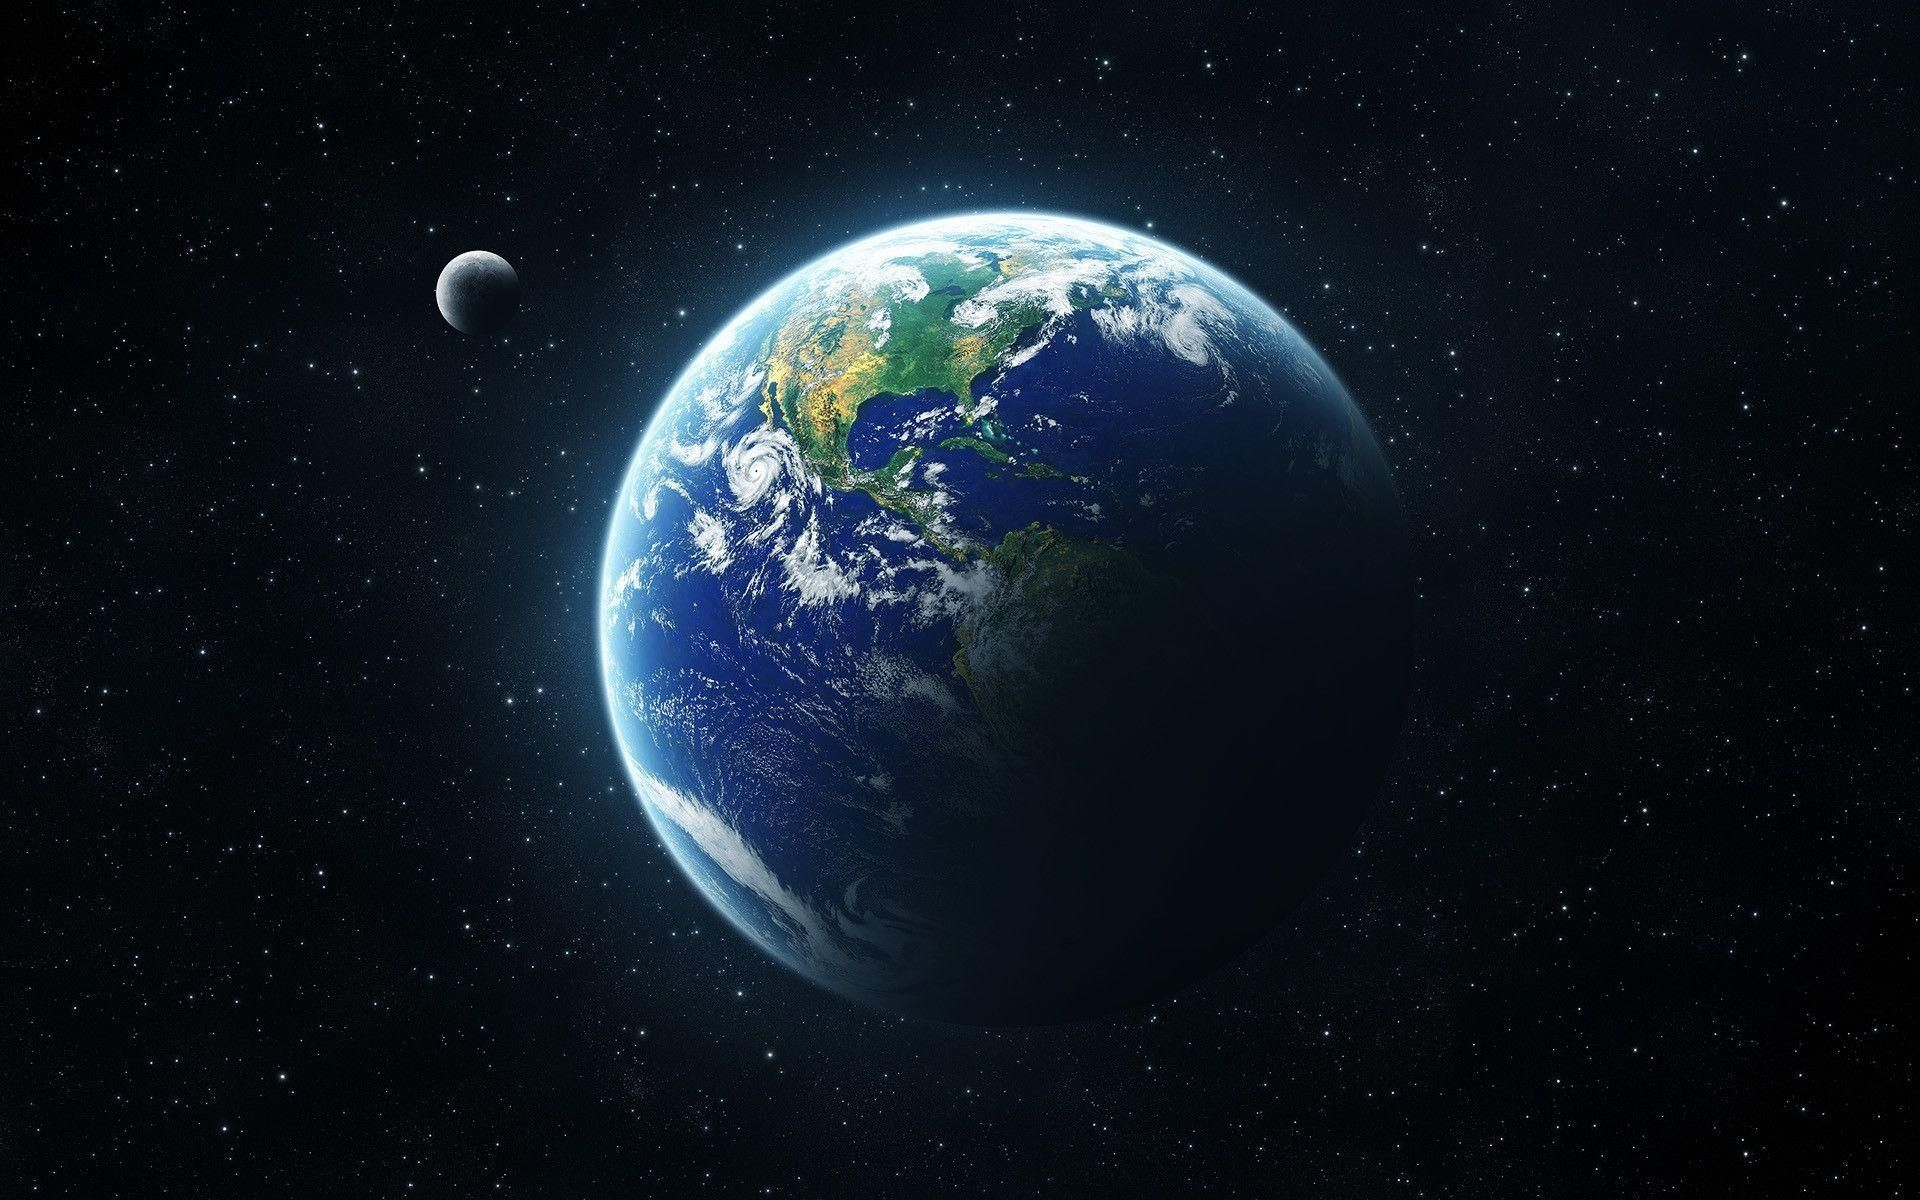 10 Top Wallpaper Of The Earth Full Hd 1080p For Pc Desktop Hd Cool Wallpapers Wallpaper Earth Top Wallpaper